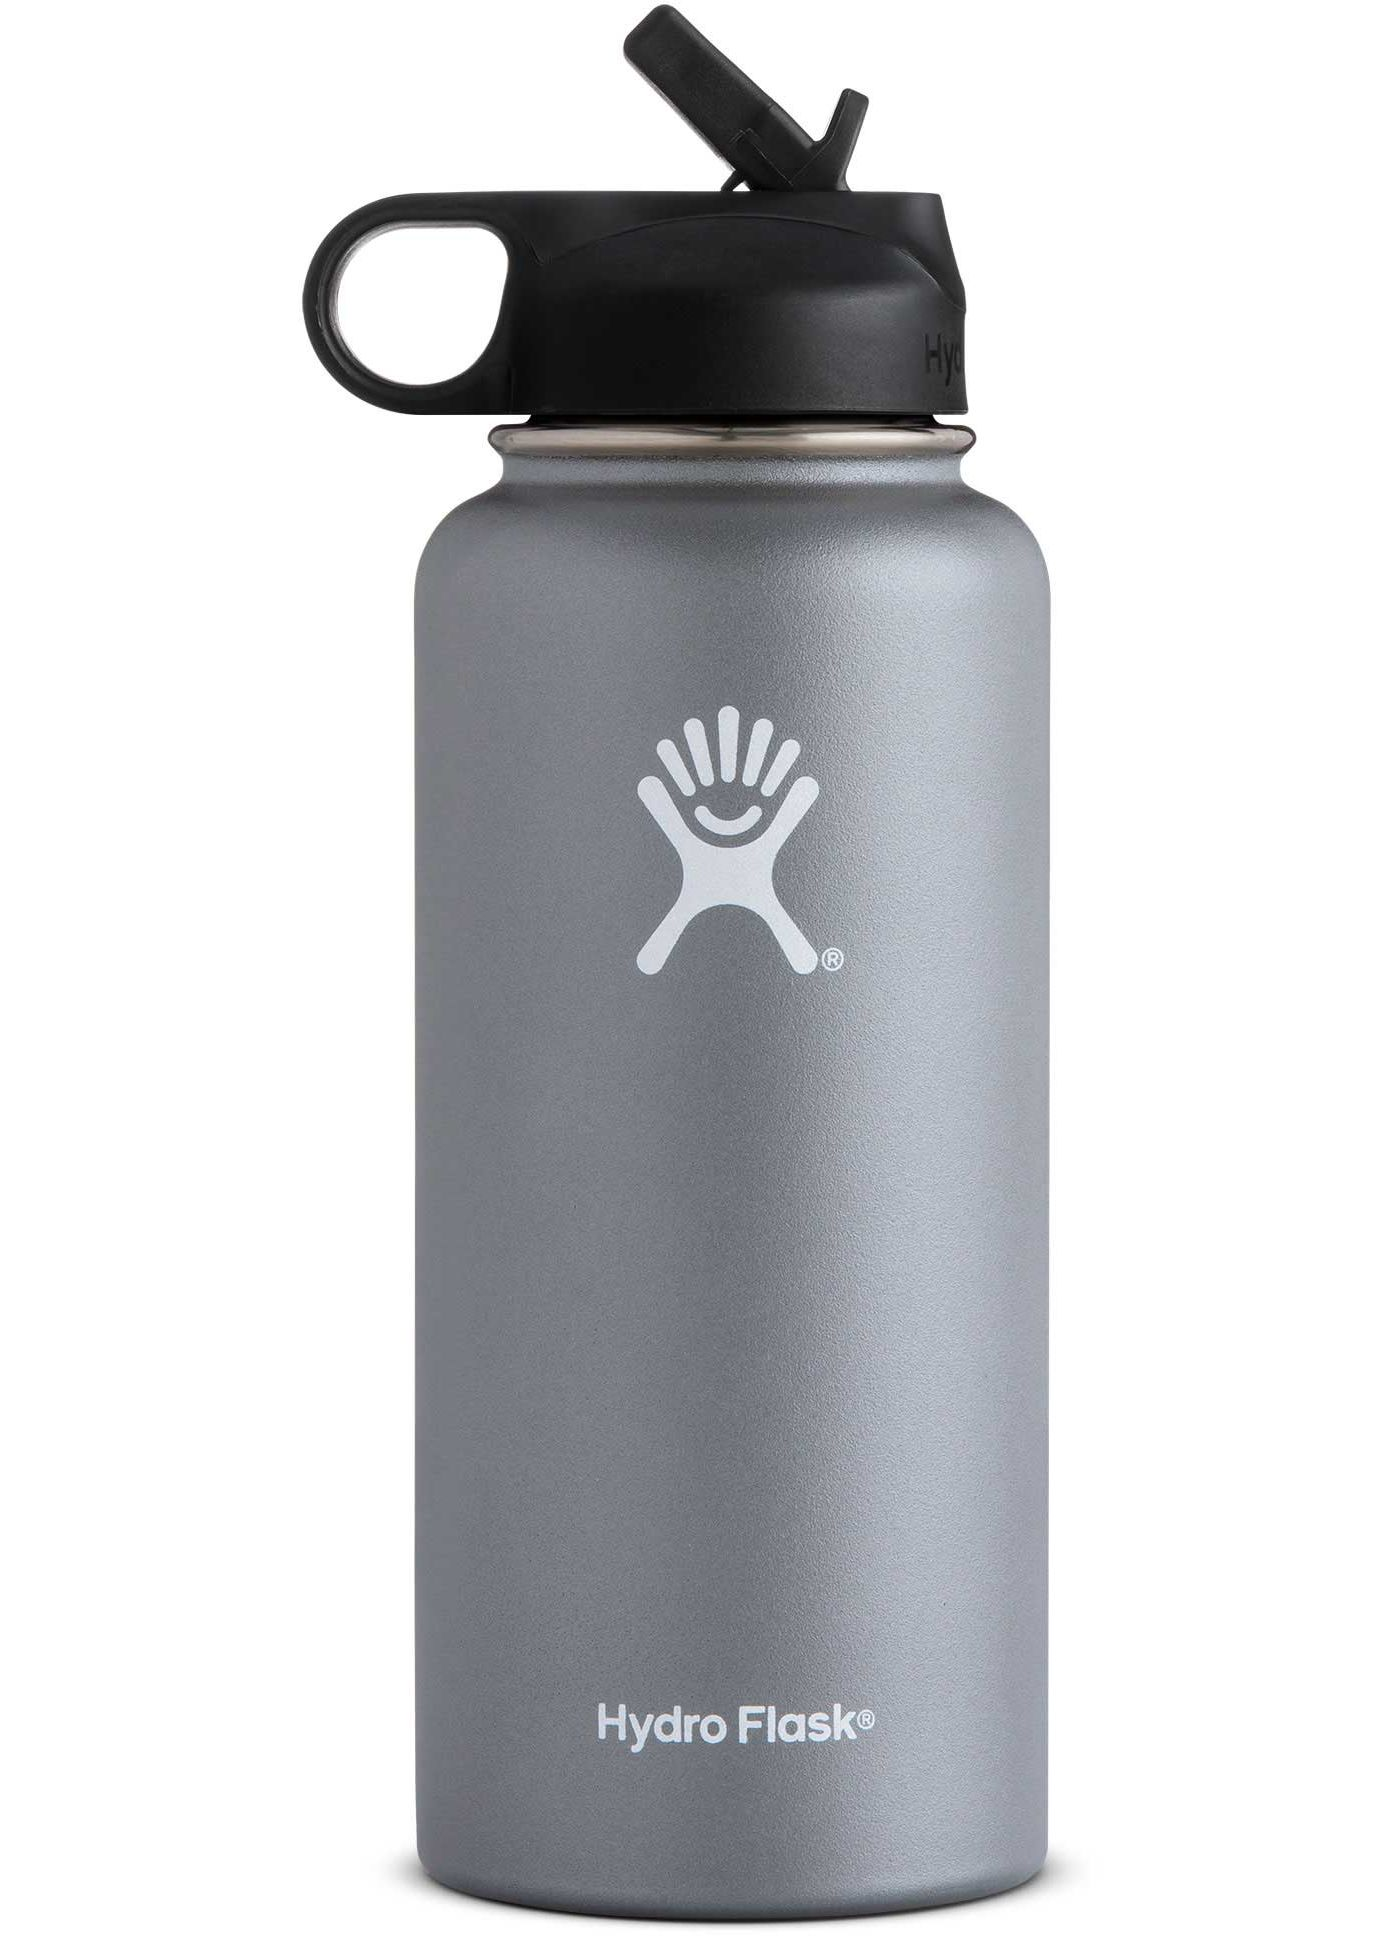 Hydro Flask Wide Mouth 32 oz. Bottle with Straw Lid